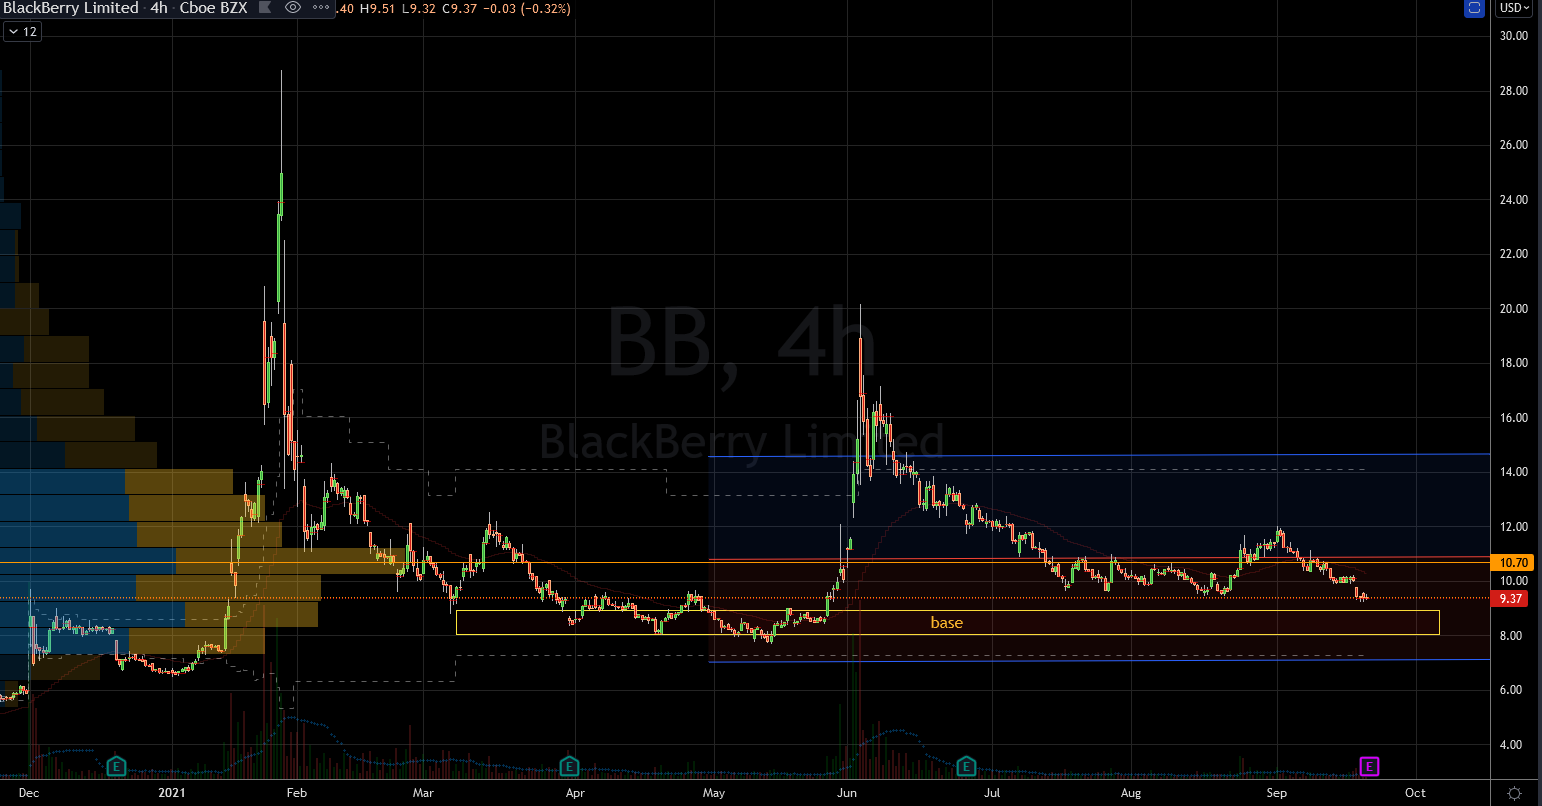 Blackberry (BB) Stock Showing Solid Base